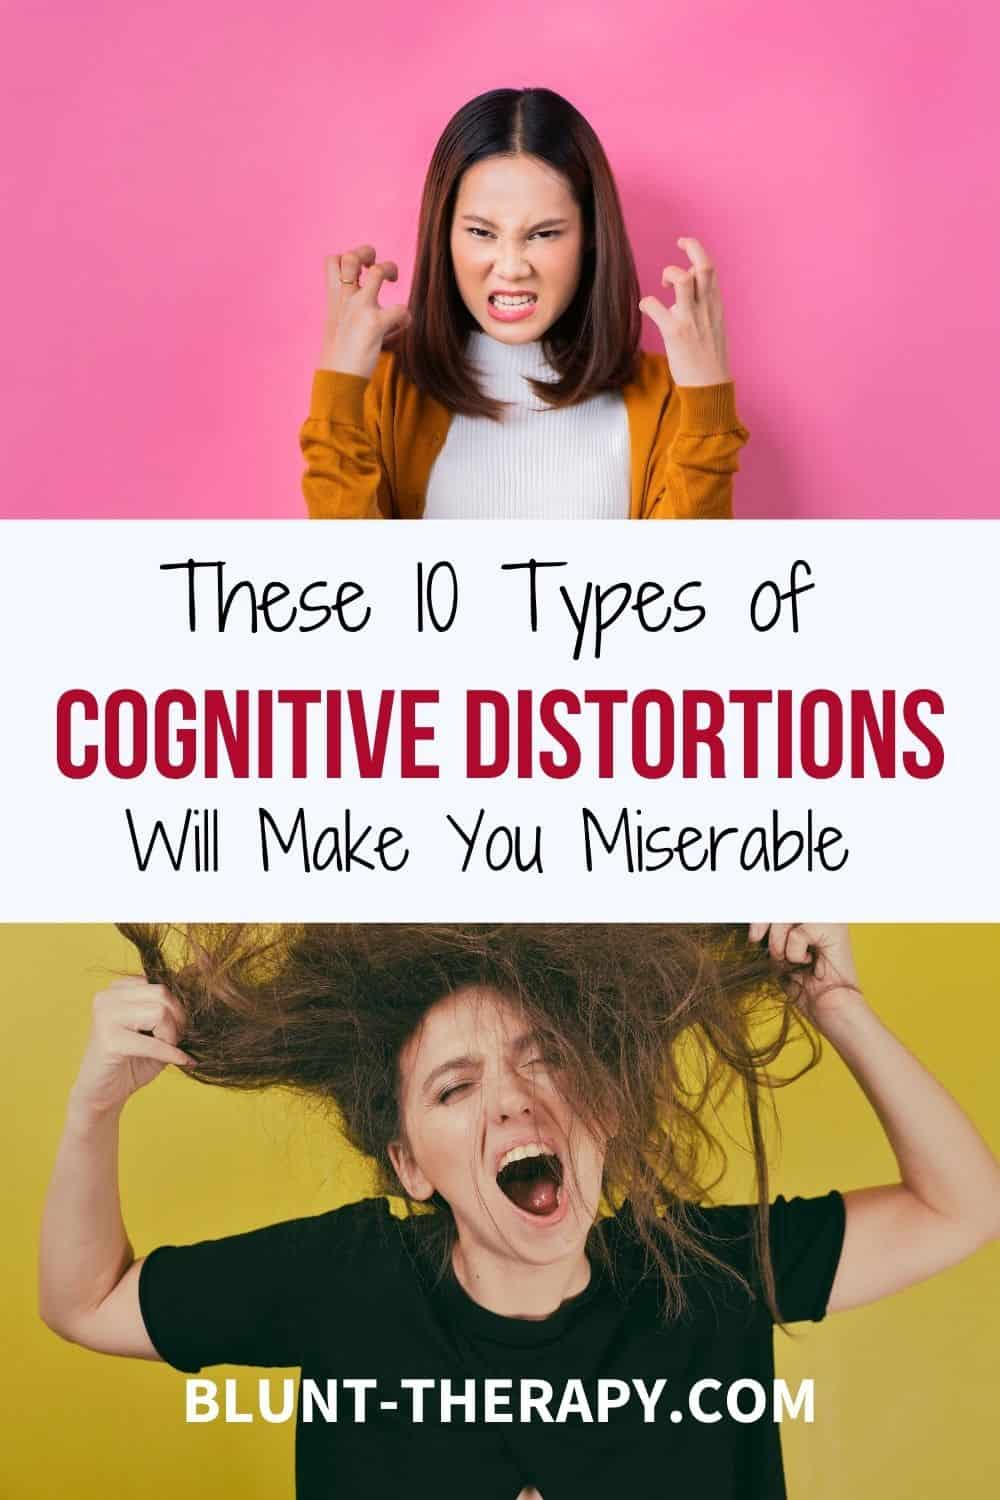 10 Types of Cognitive Distortions that Will Make You Miserable